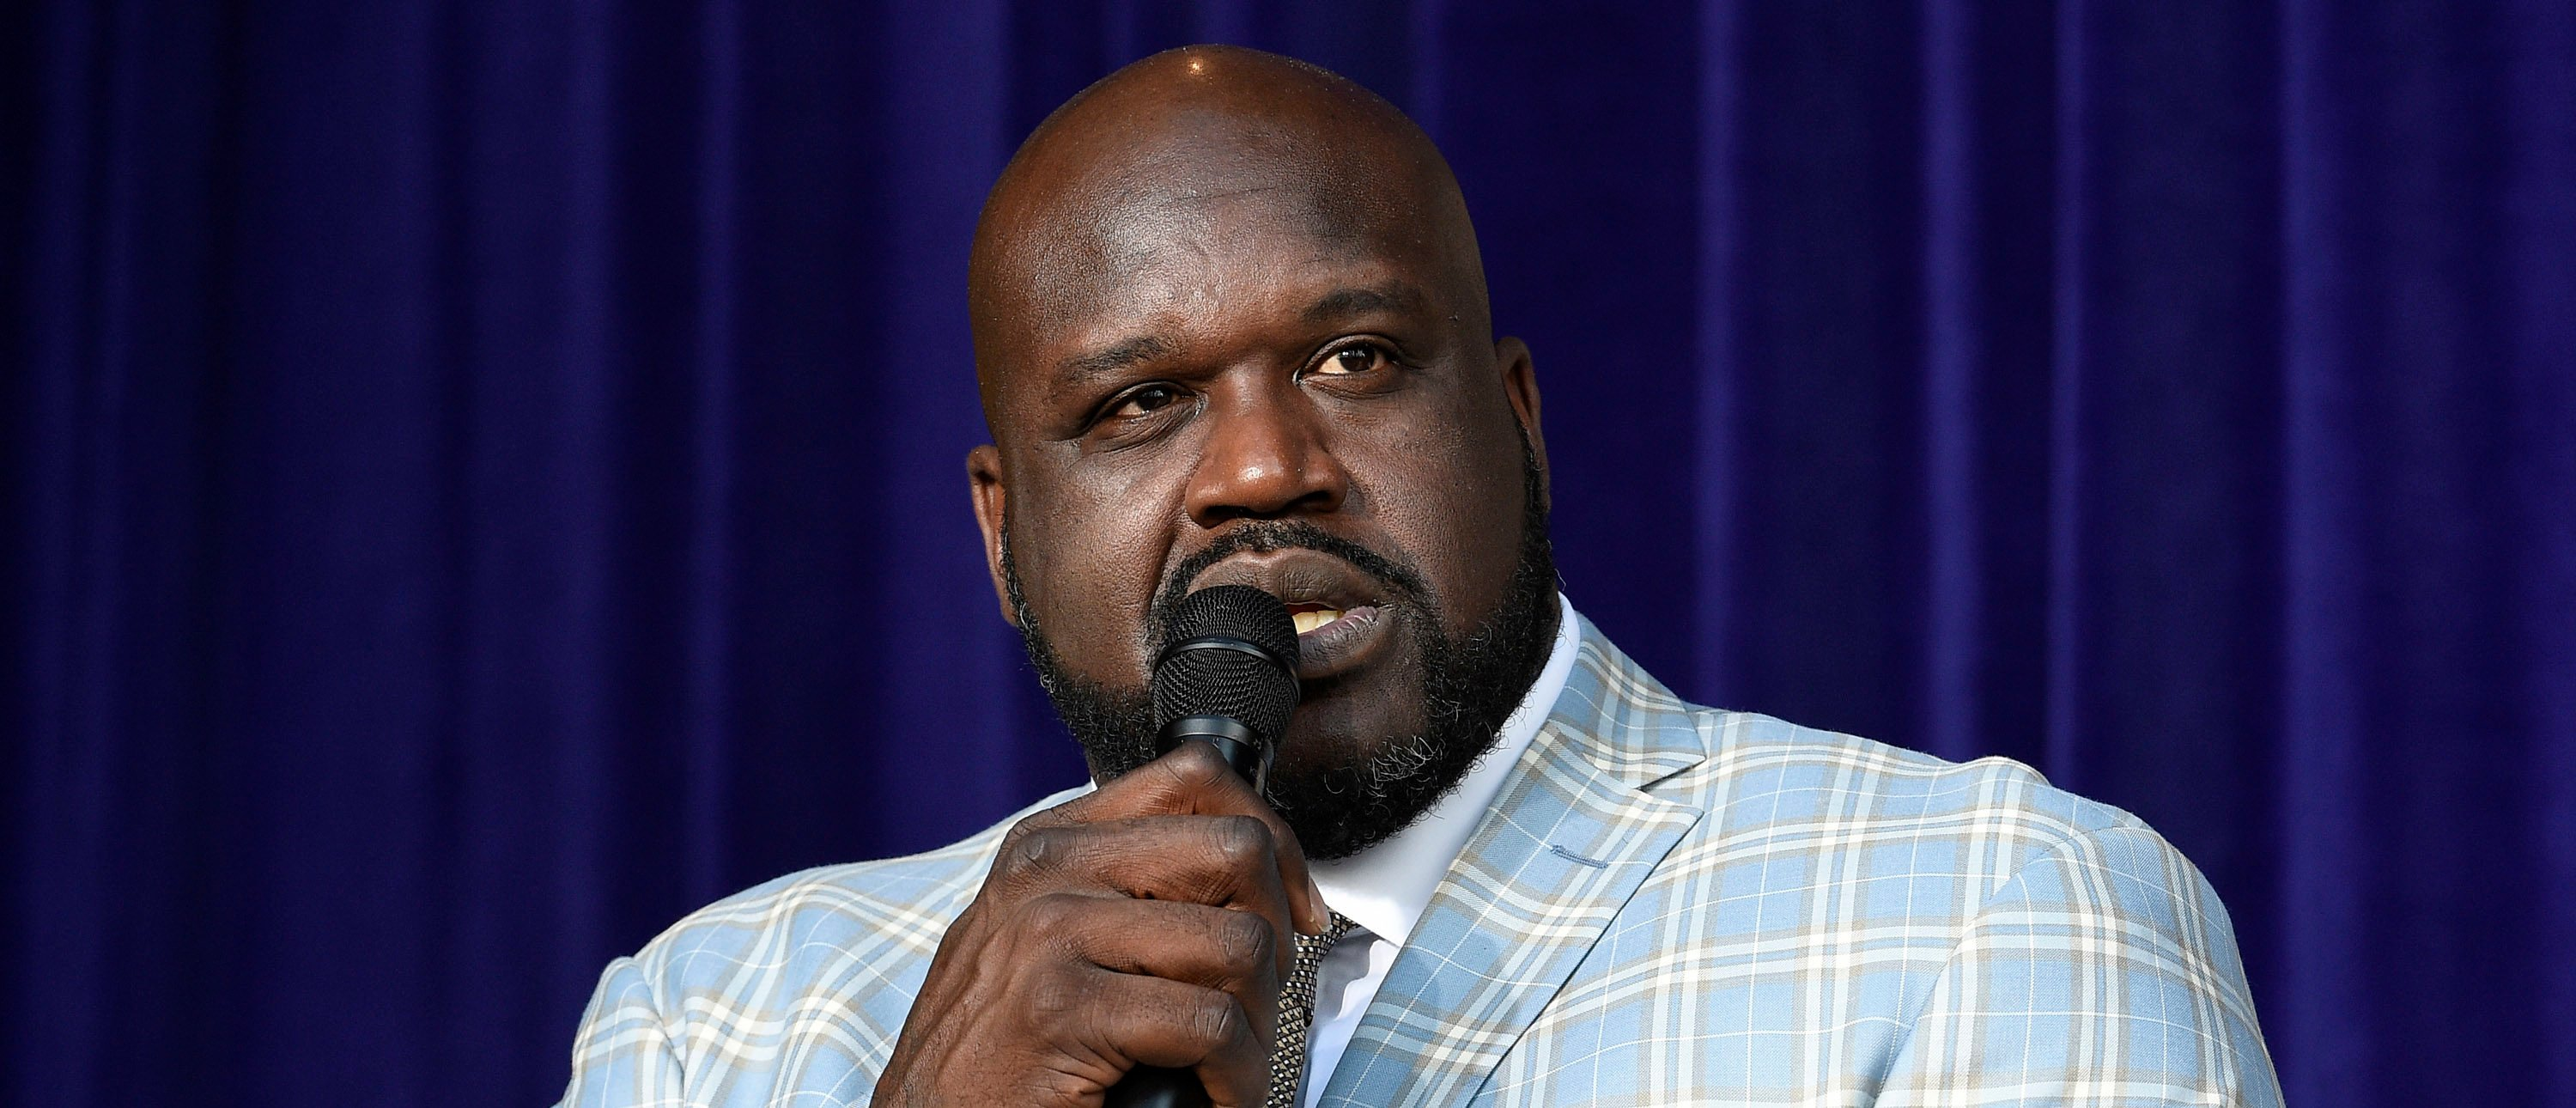 LOS ANGELES, CA - MARCH 24: Former Los Angeles Lakers player Shaquille O'Neal speaks after unveiling of his statue at Staples Center March 24, 2017, in Los Angeles, California. NOTE TO USER: User expressly acknowledges and agrees that, by downloading and or using this photograph, User is consenting to the terms and conditions of the Getty Images License Agreement. (Photo by Kevork Djansezian/Getty Images)